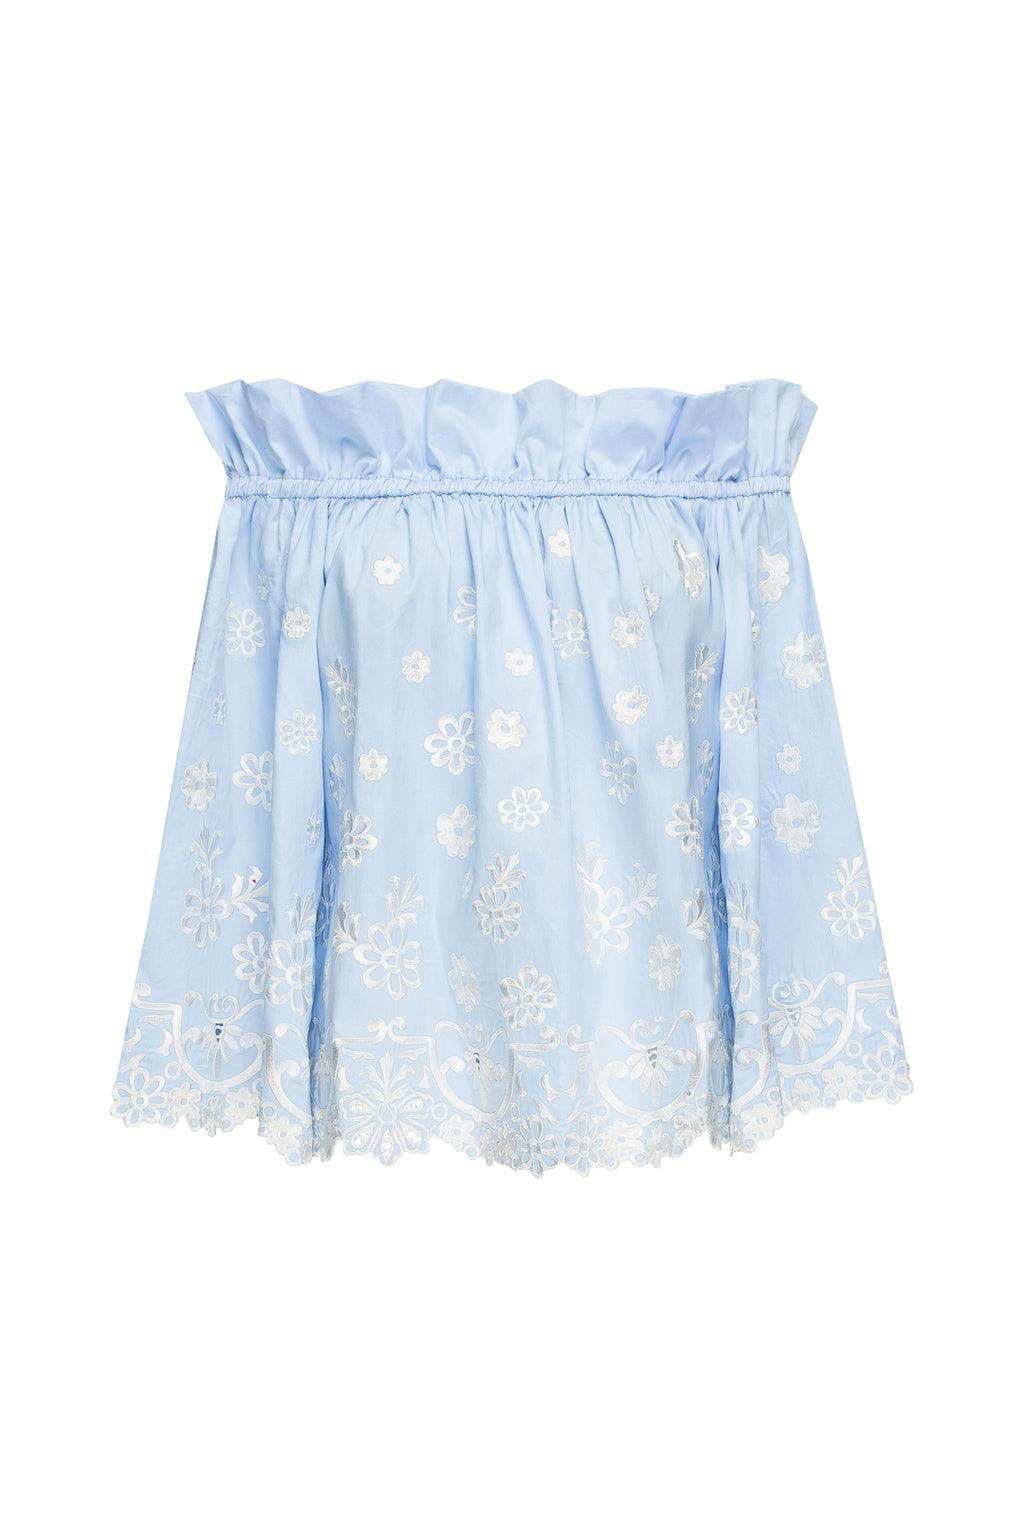 CHAMOMILE top in blue cotton with white